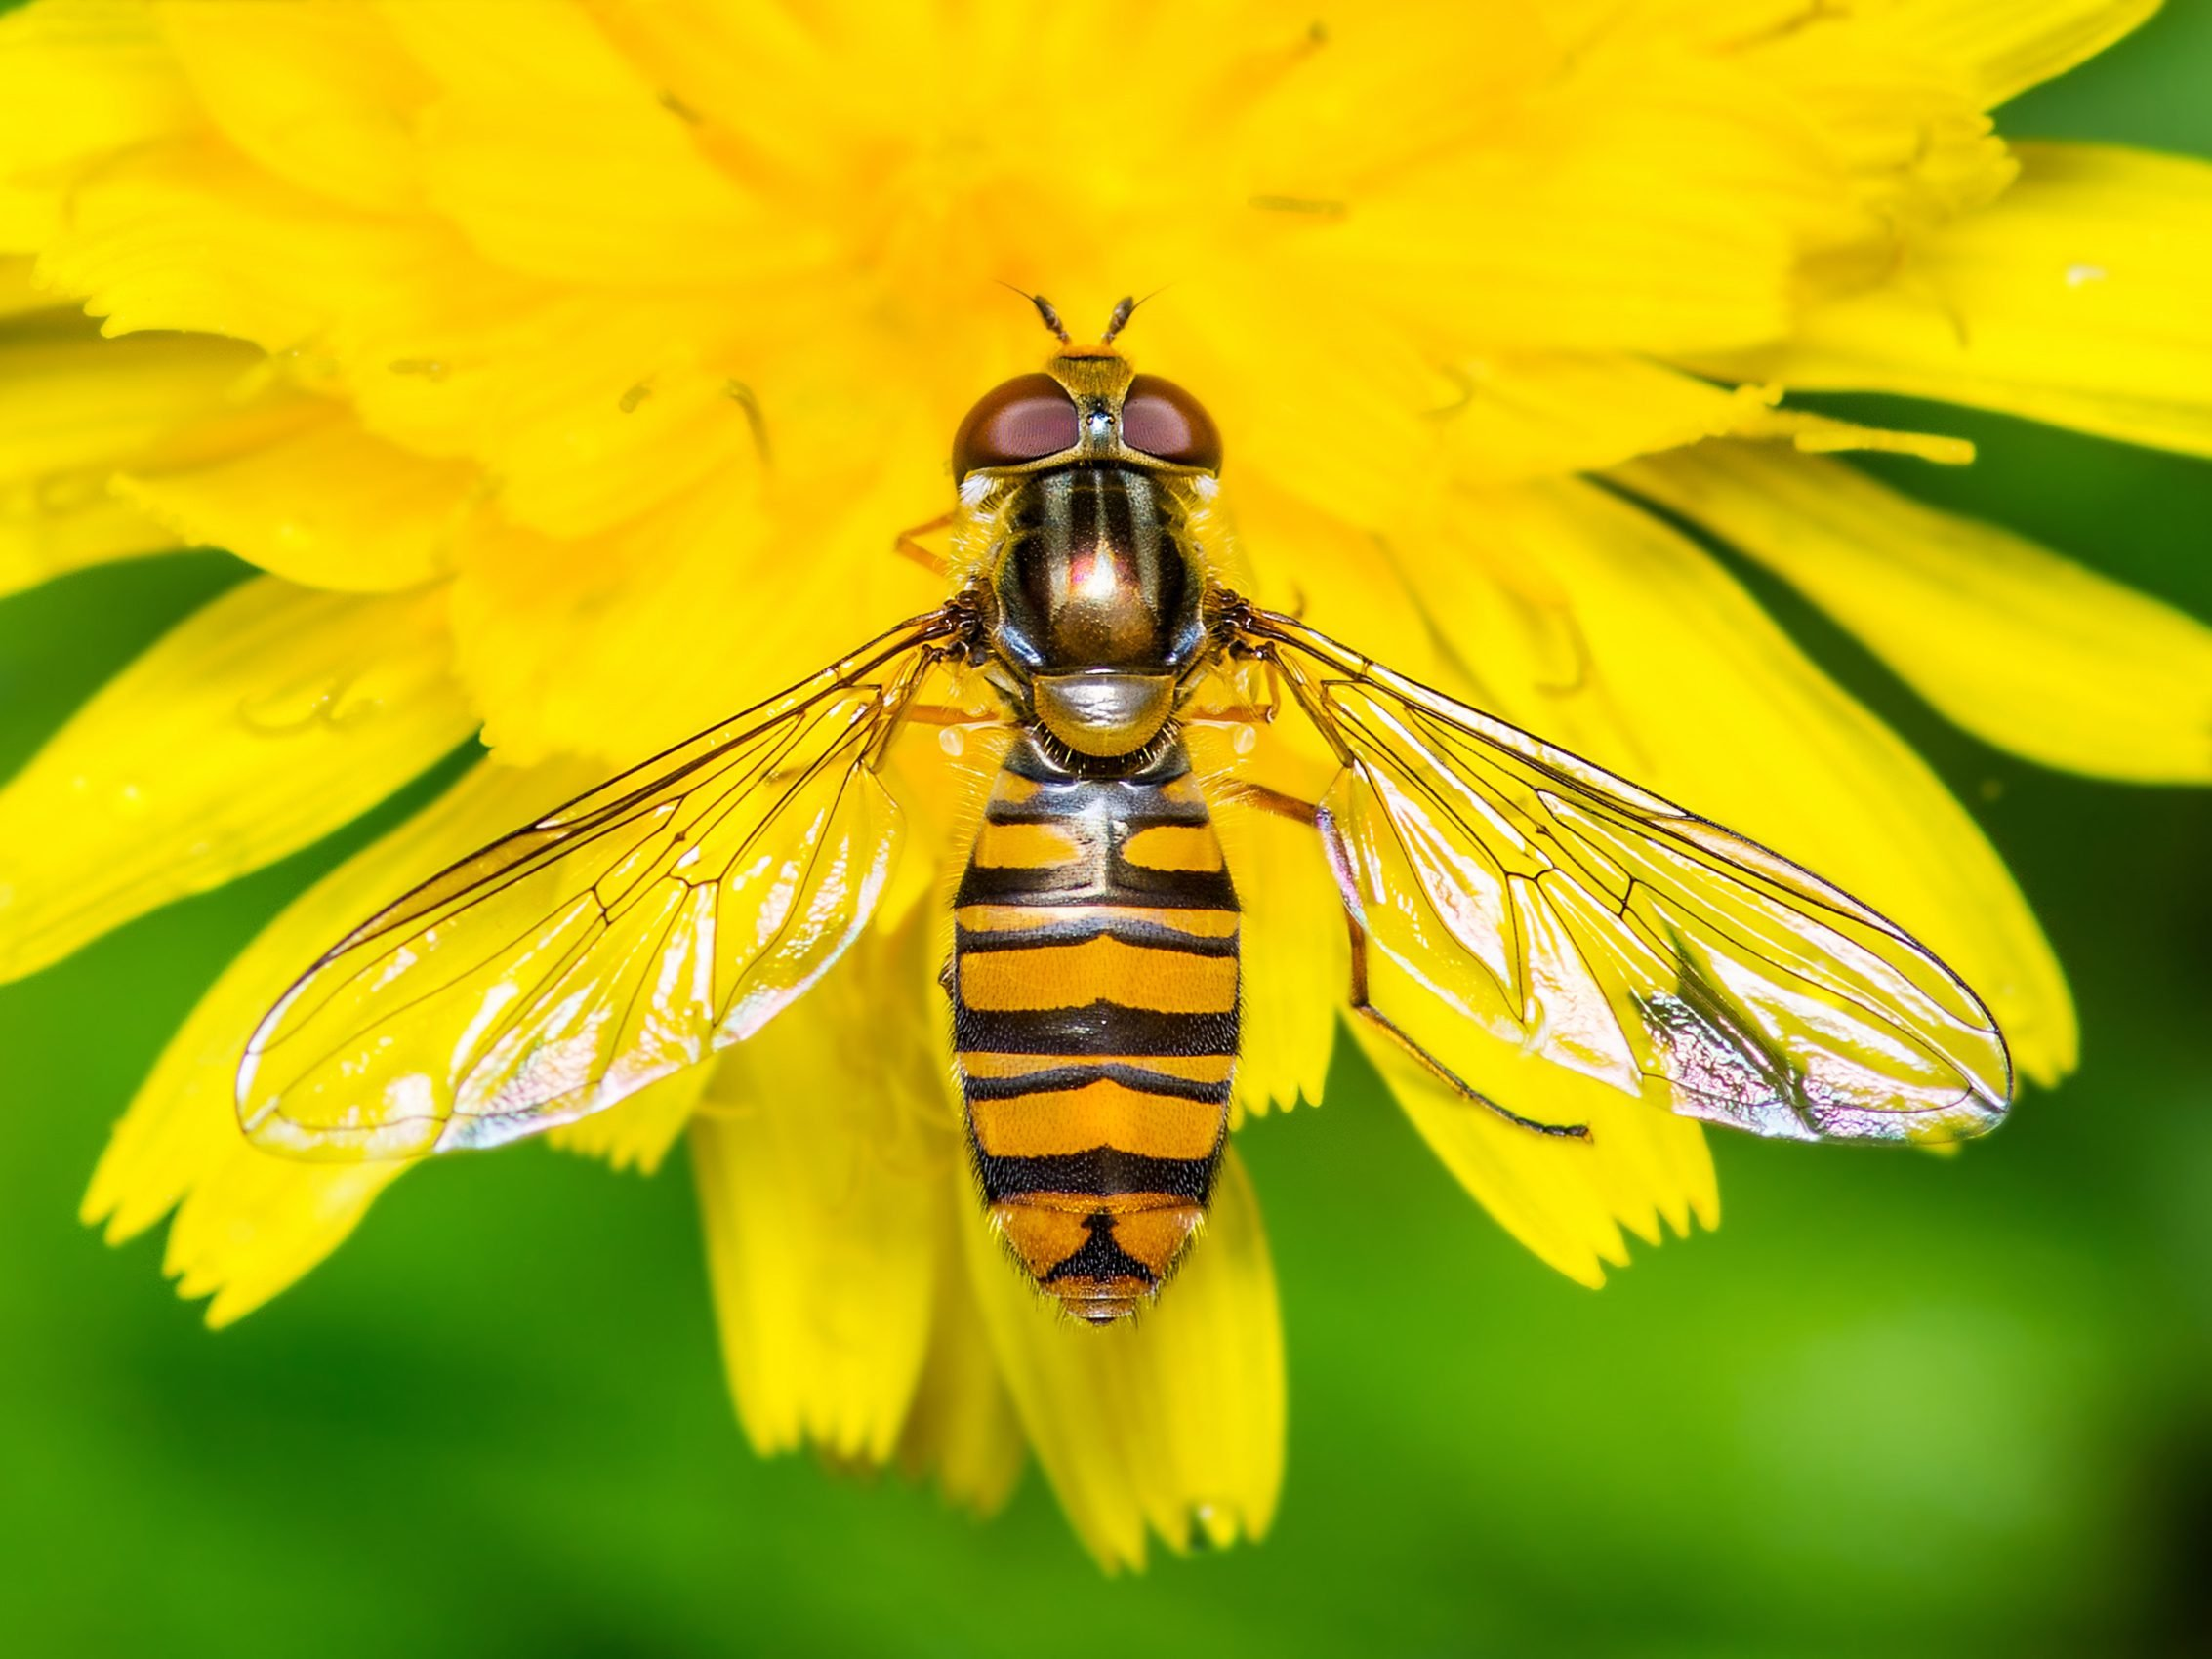 1. Hoverfly